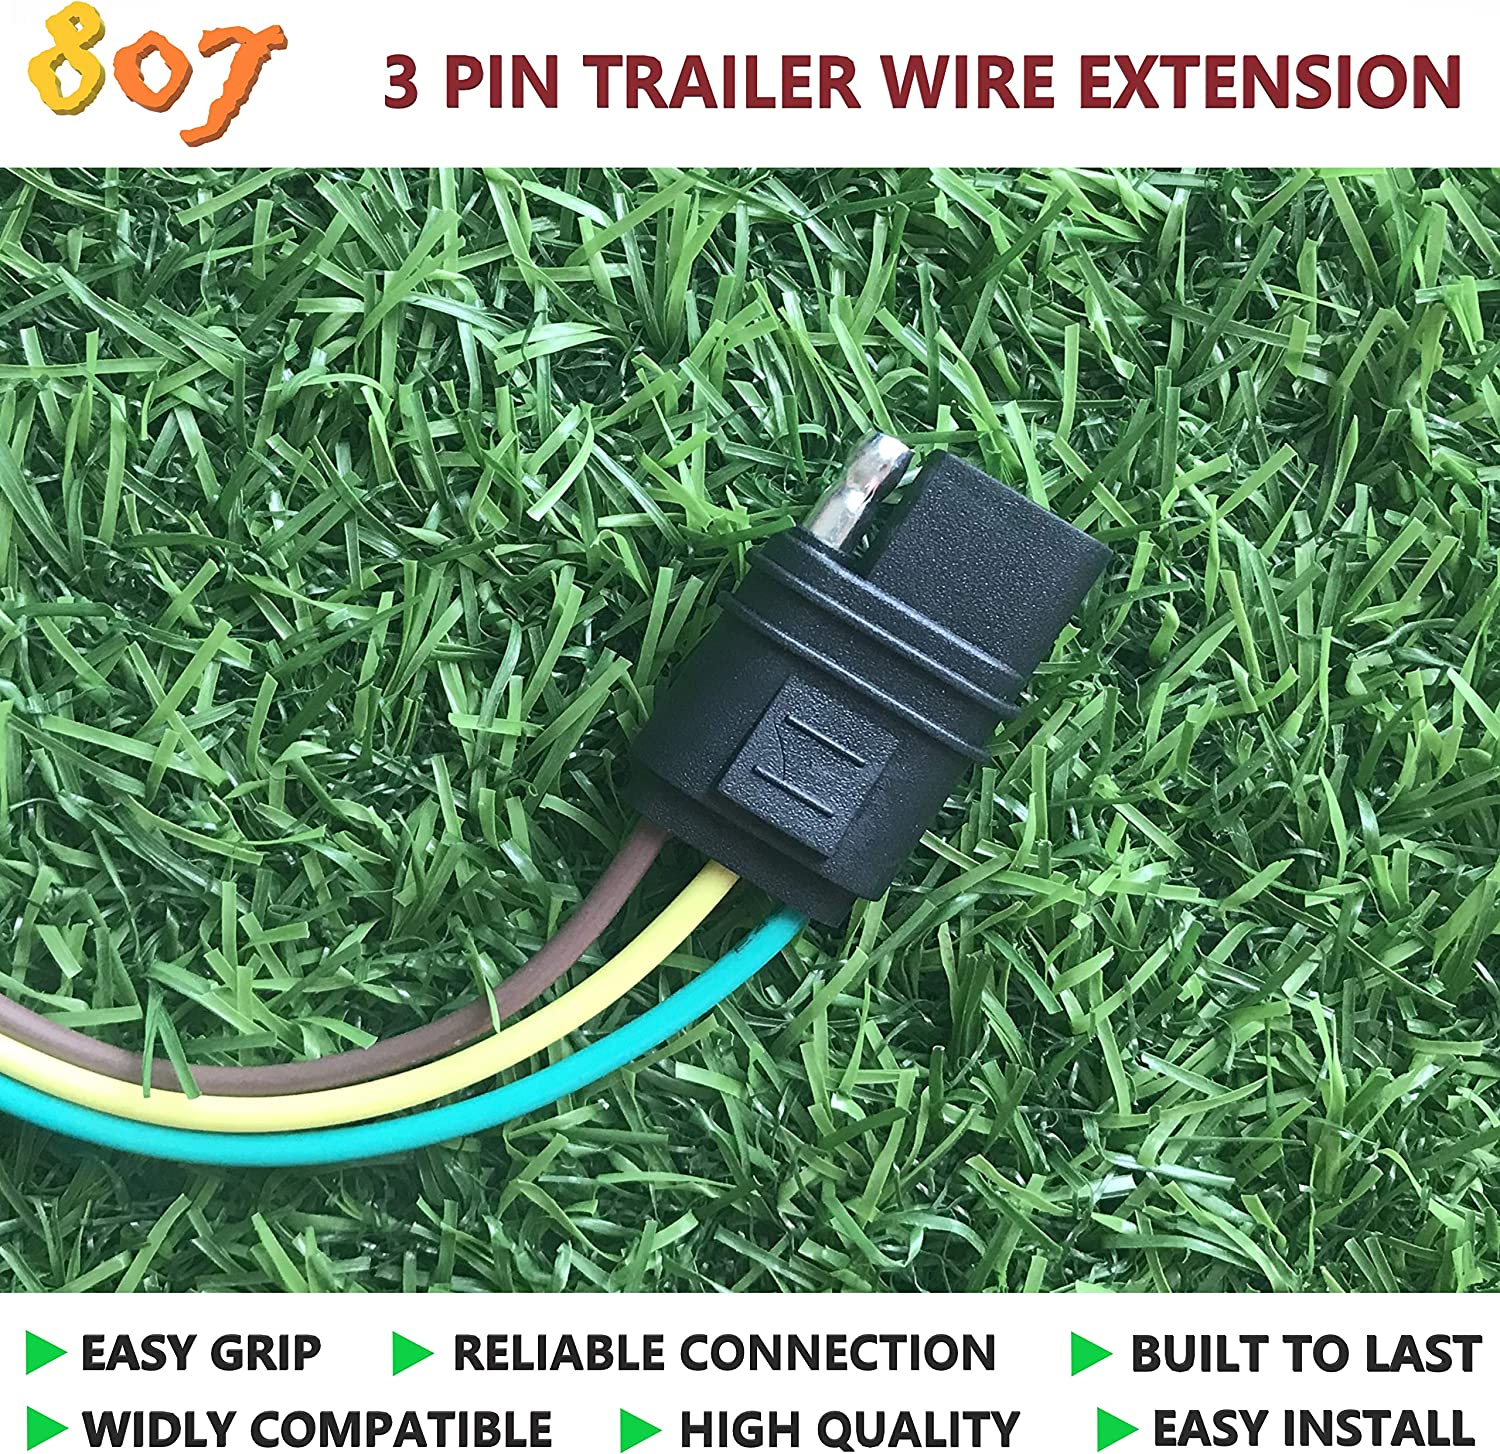 Amazon.com: 807 2/3/4/5/6/8 pin Trailer Connector(3-Way Flat), 2/3/4/5/6/8  Way Trailer Wire Extension 36inchs for LED Brake Tailgate Light Bars,Hitch  Light Trailer Wiring Harness Extension Connector(3 Way Flat): AutomotiveAmazon.com